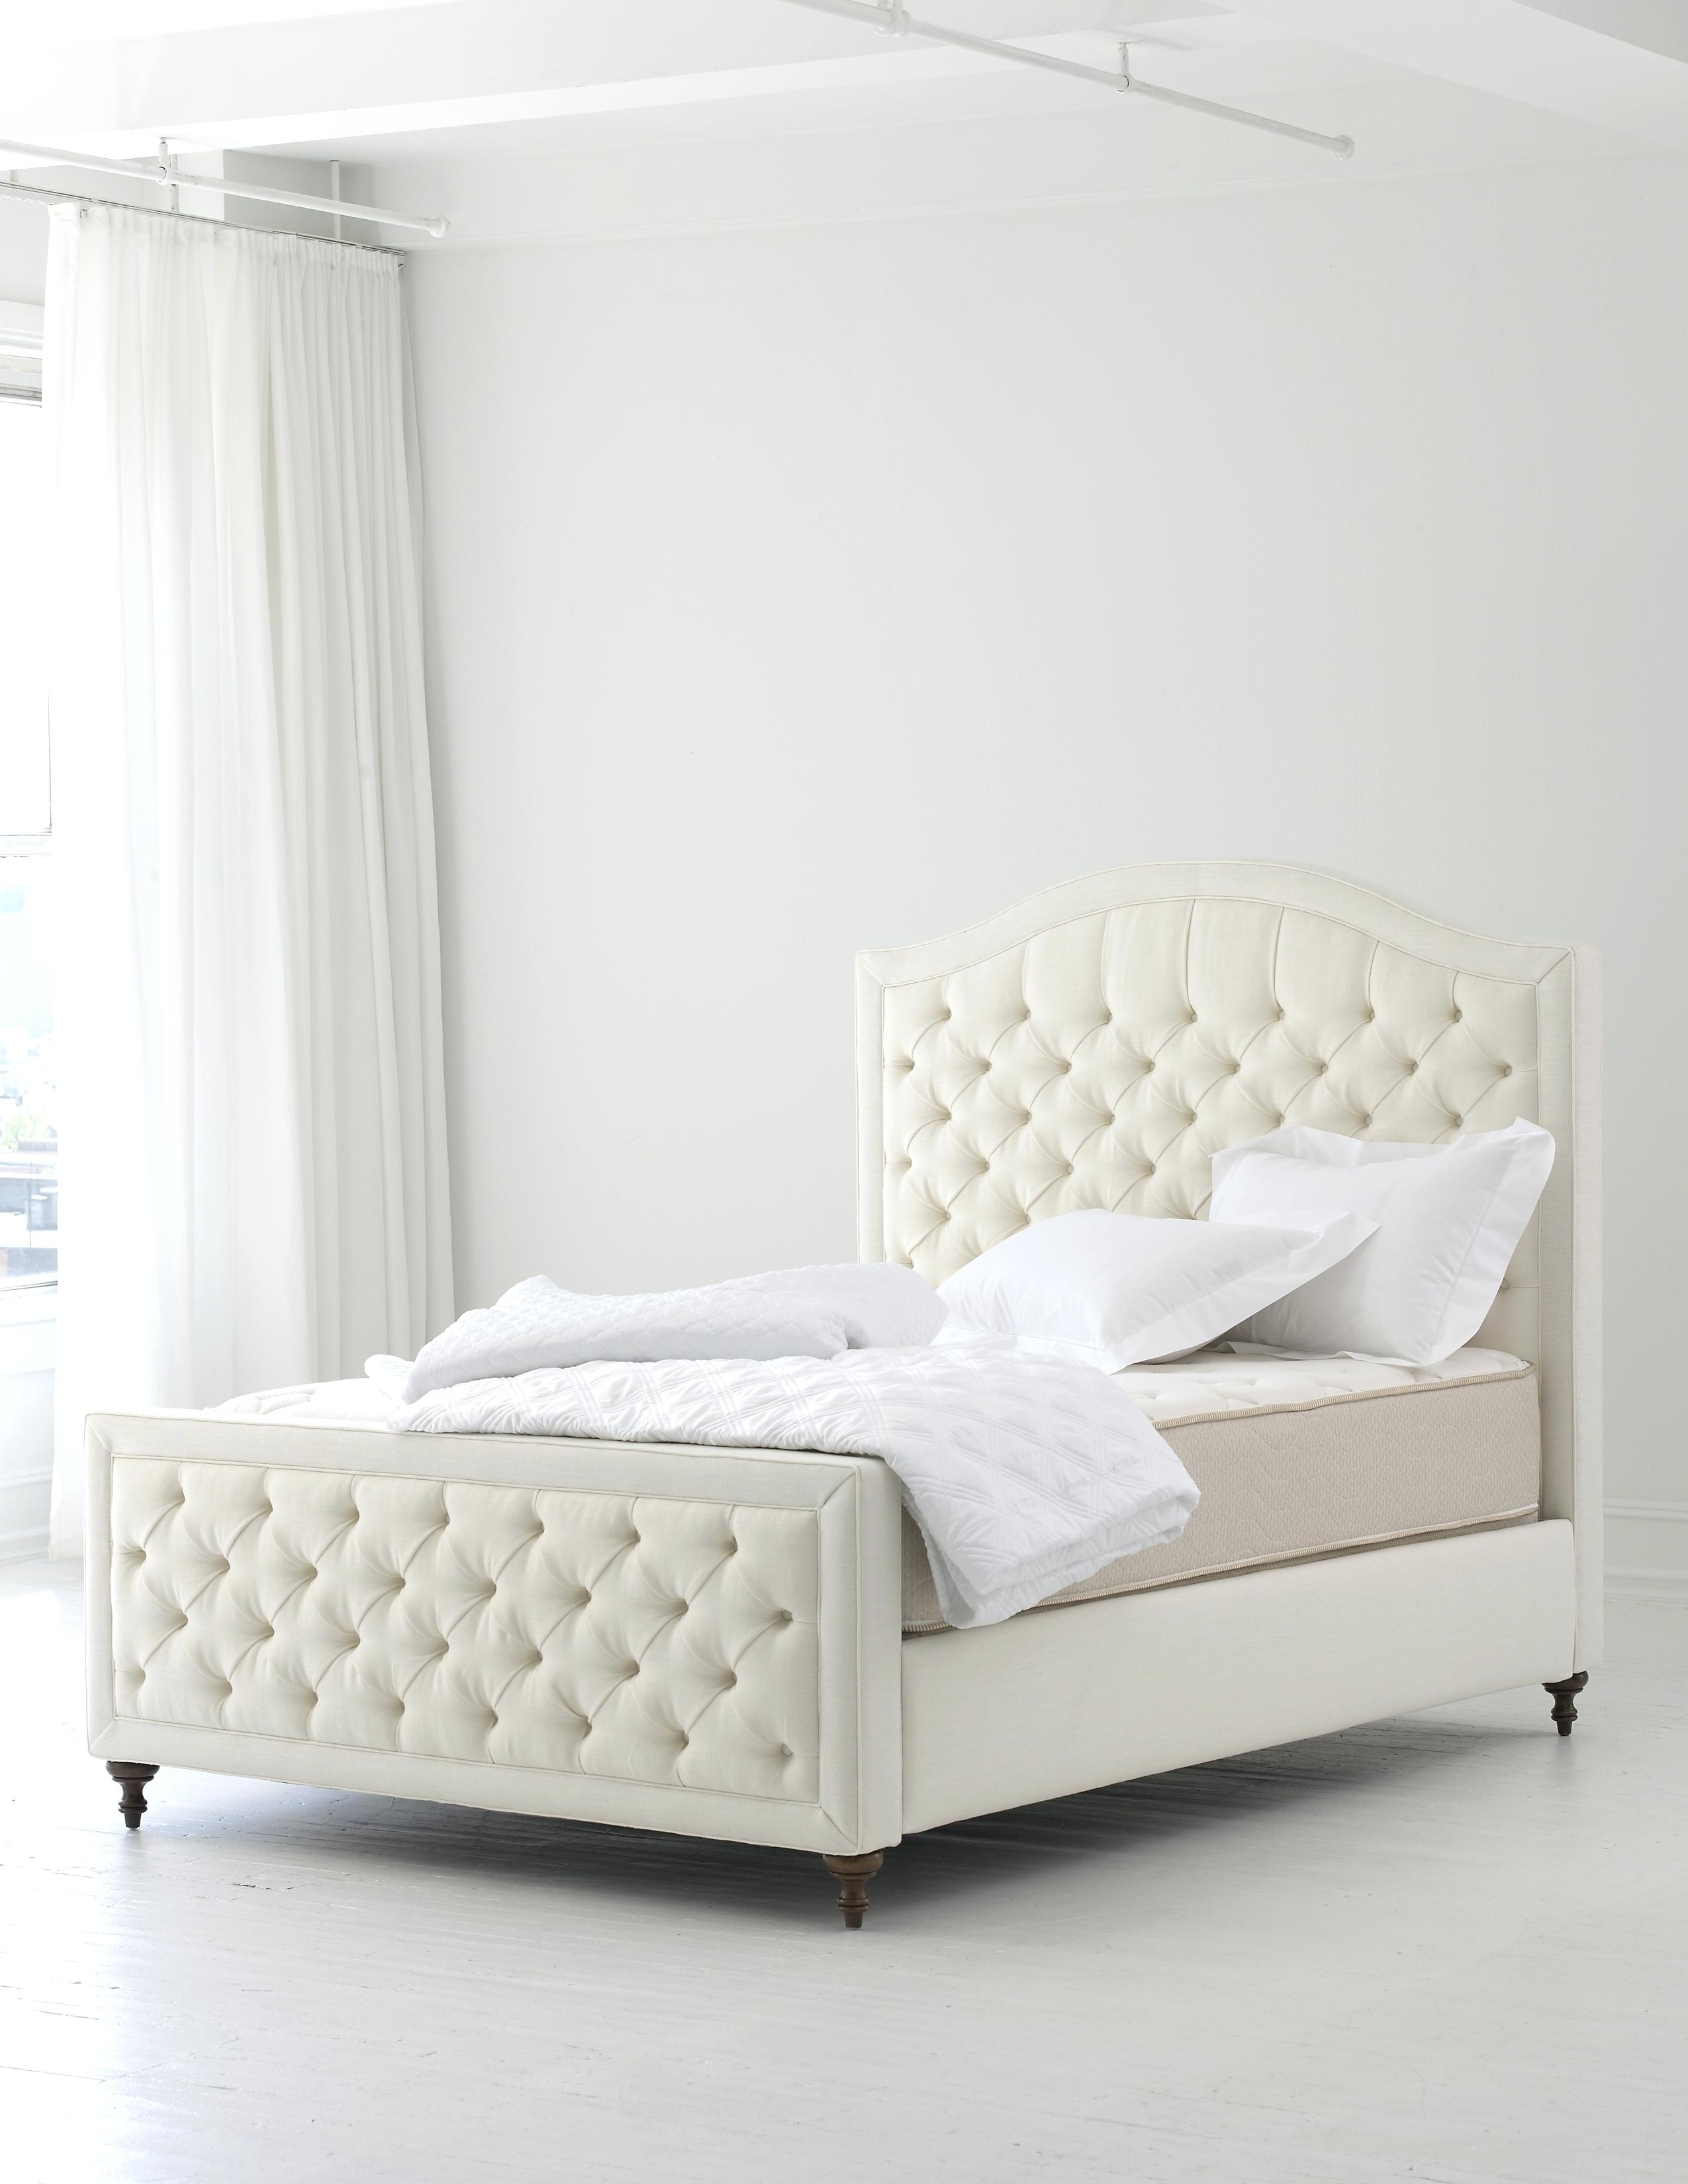 Permalink to Tufted Bed Frame Full Size